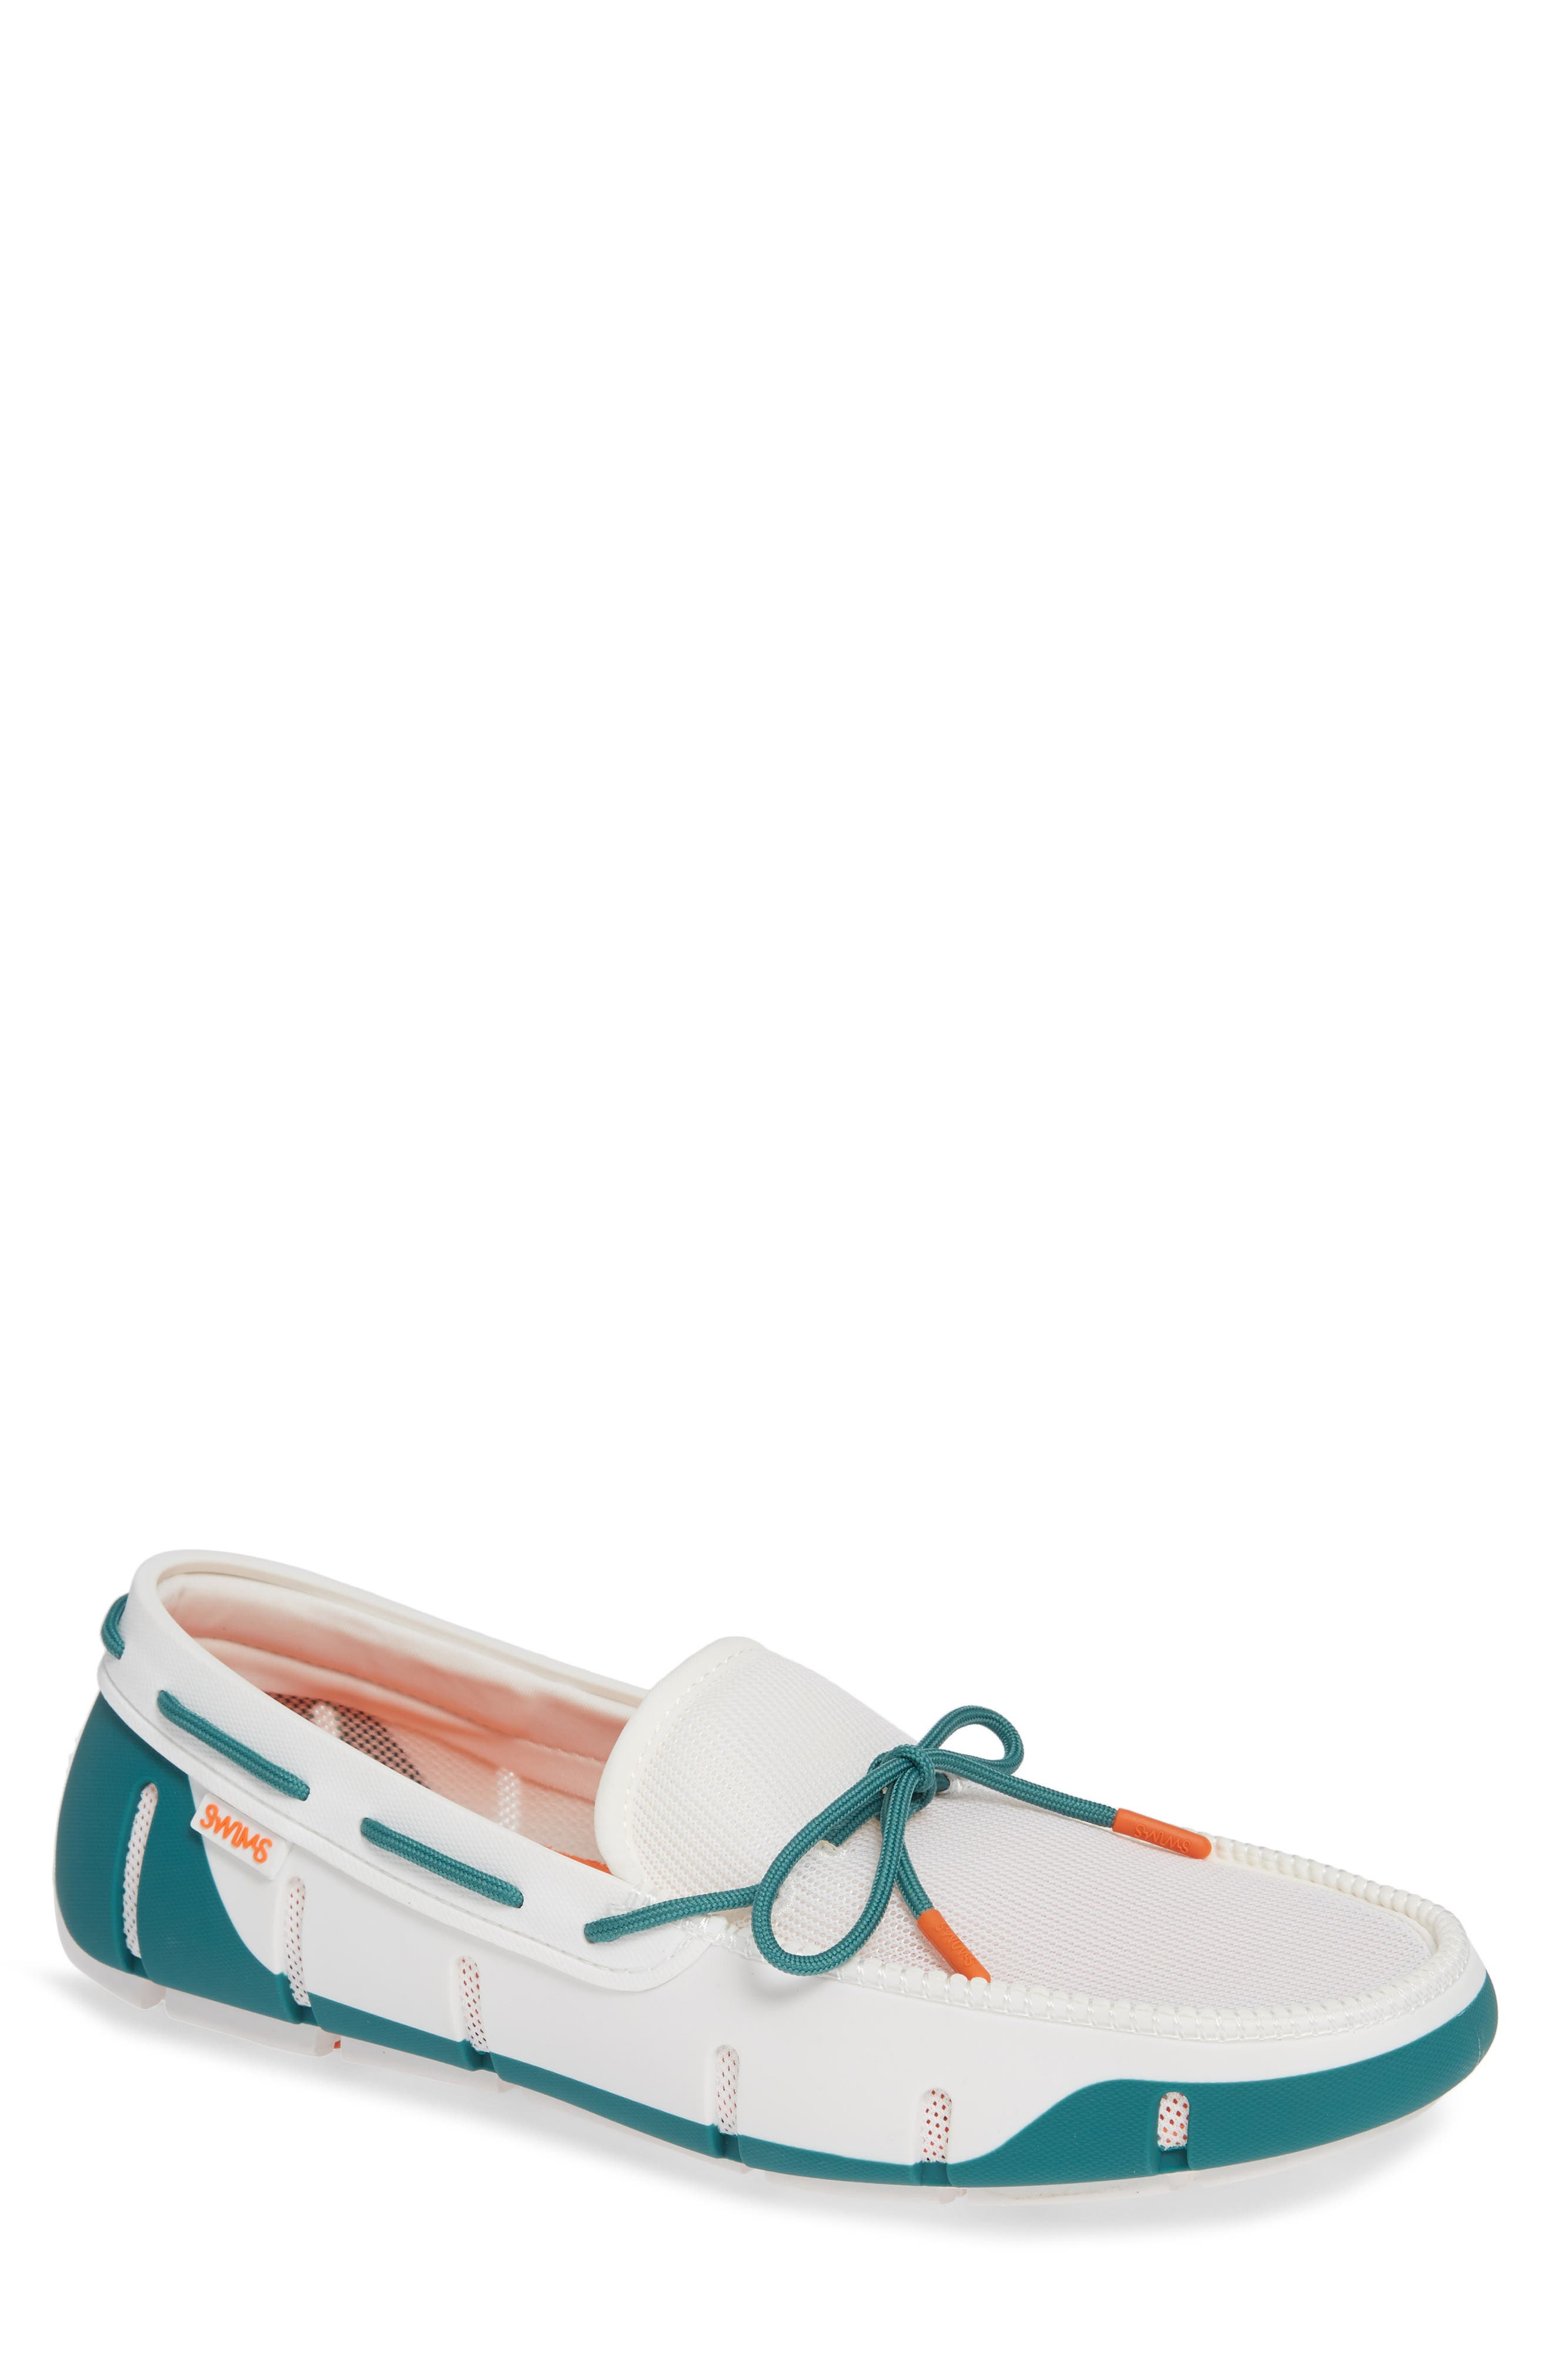 Stride Lace Loafer,                         Main,                         color, WHITE/ TEAL